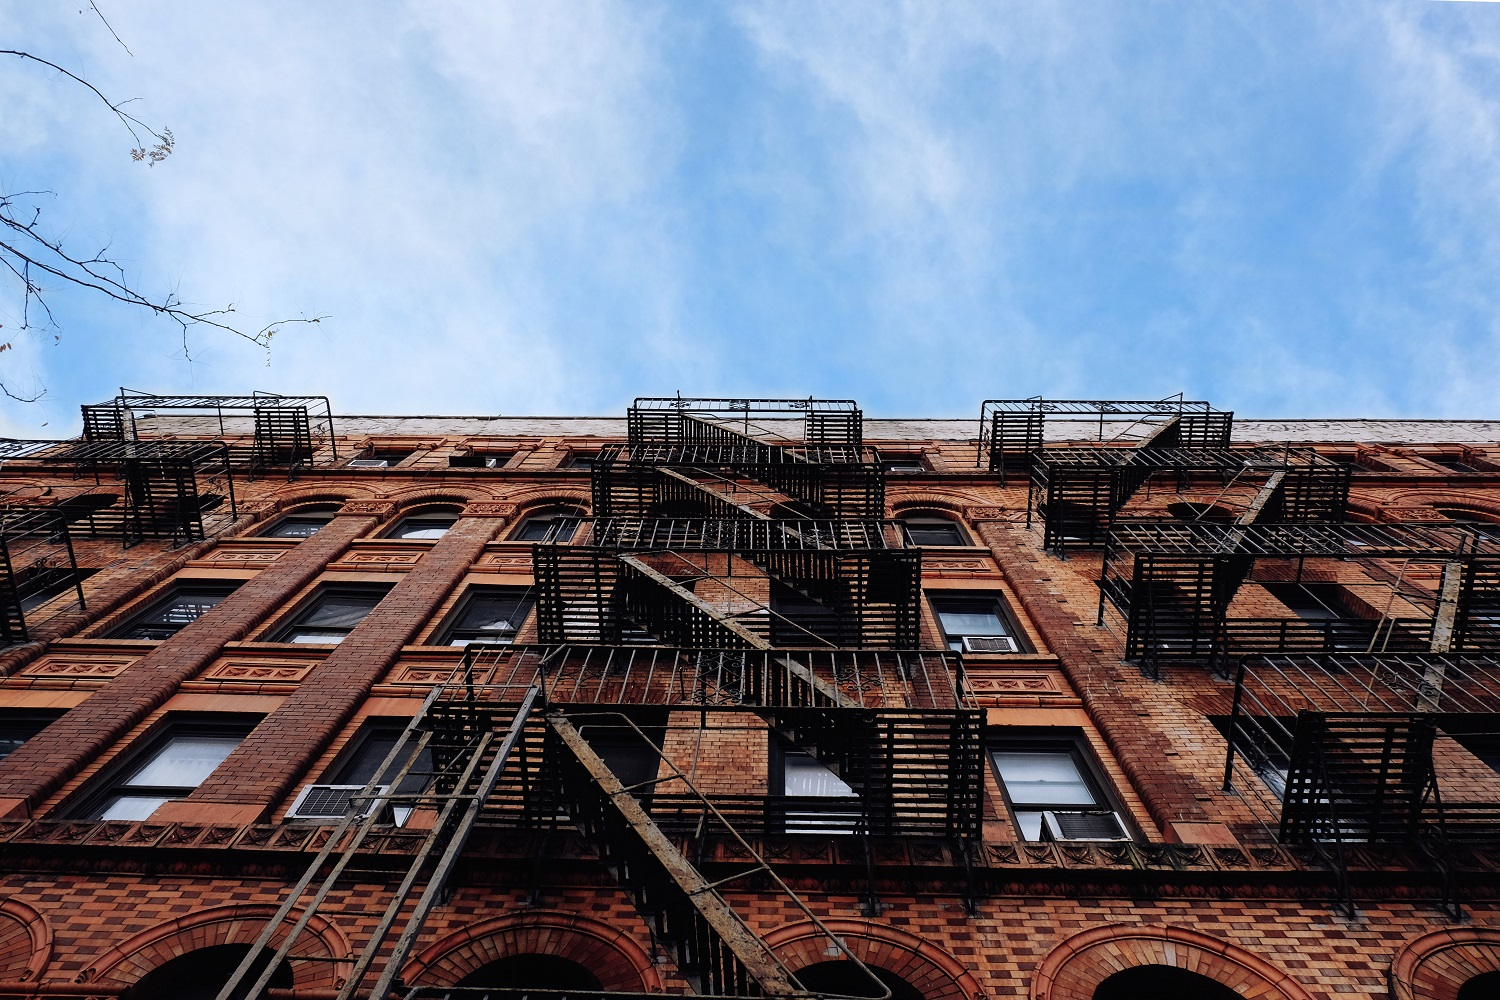 Image of a brick façade of mid-rise apartment buildings with fire escapes in New York City.